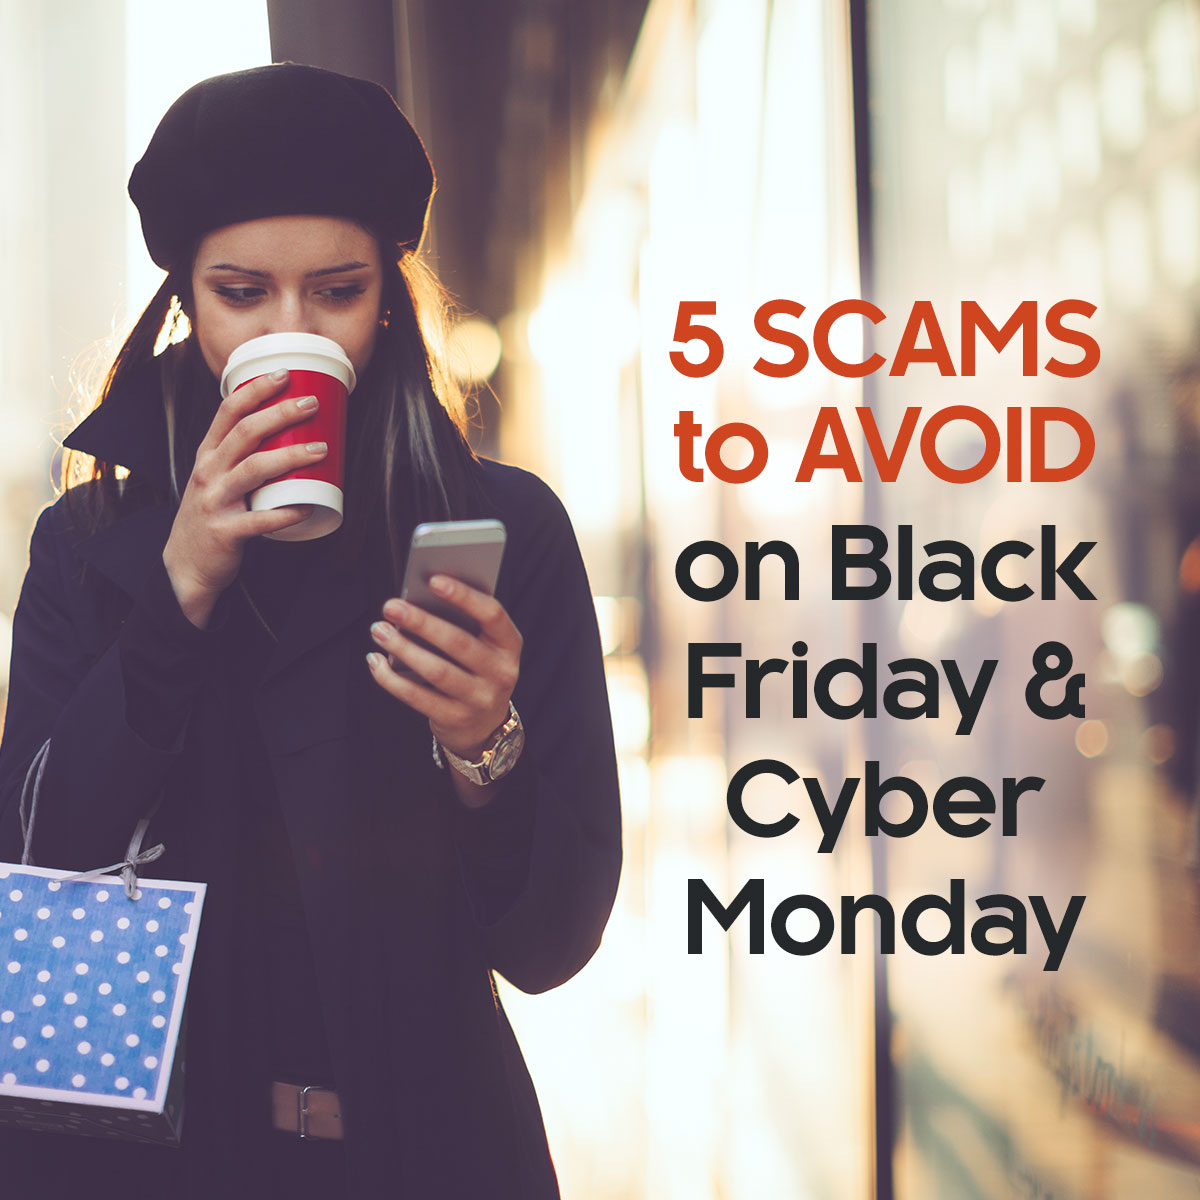 5 Scams to Avoid this Black Friday